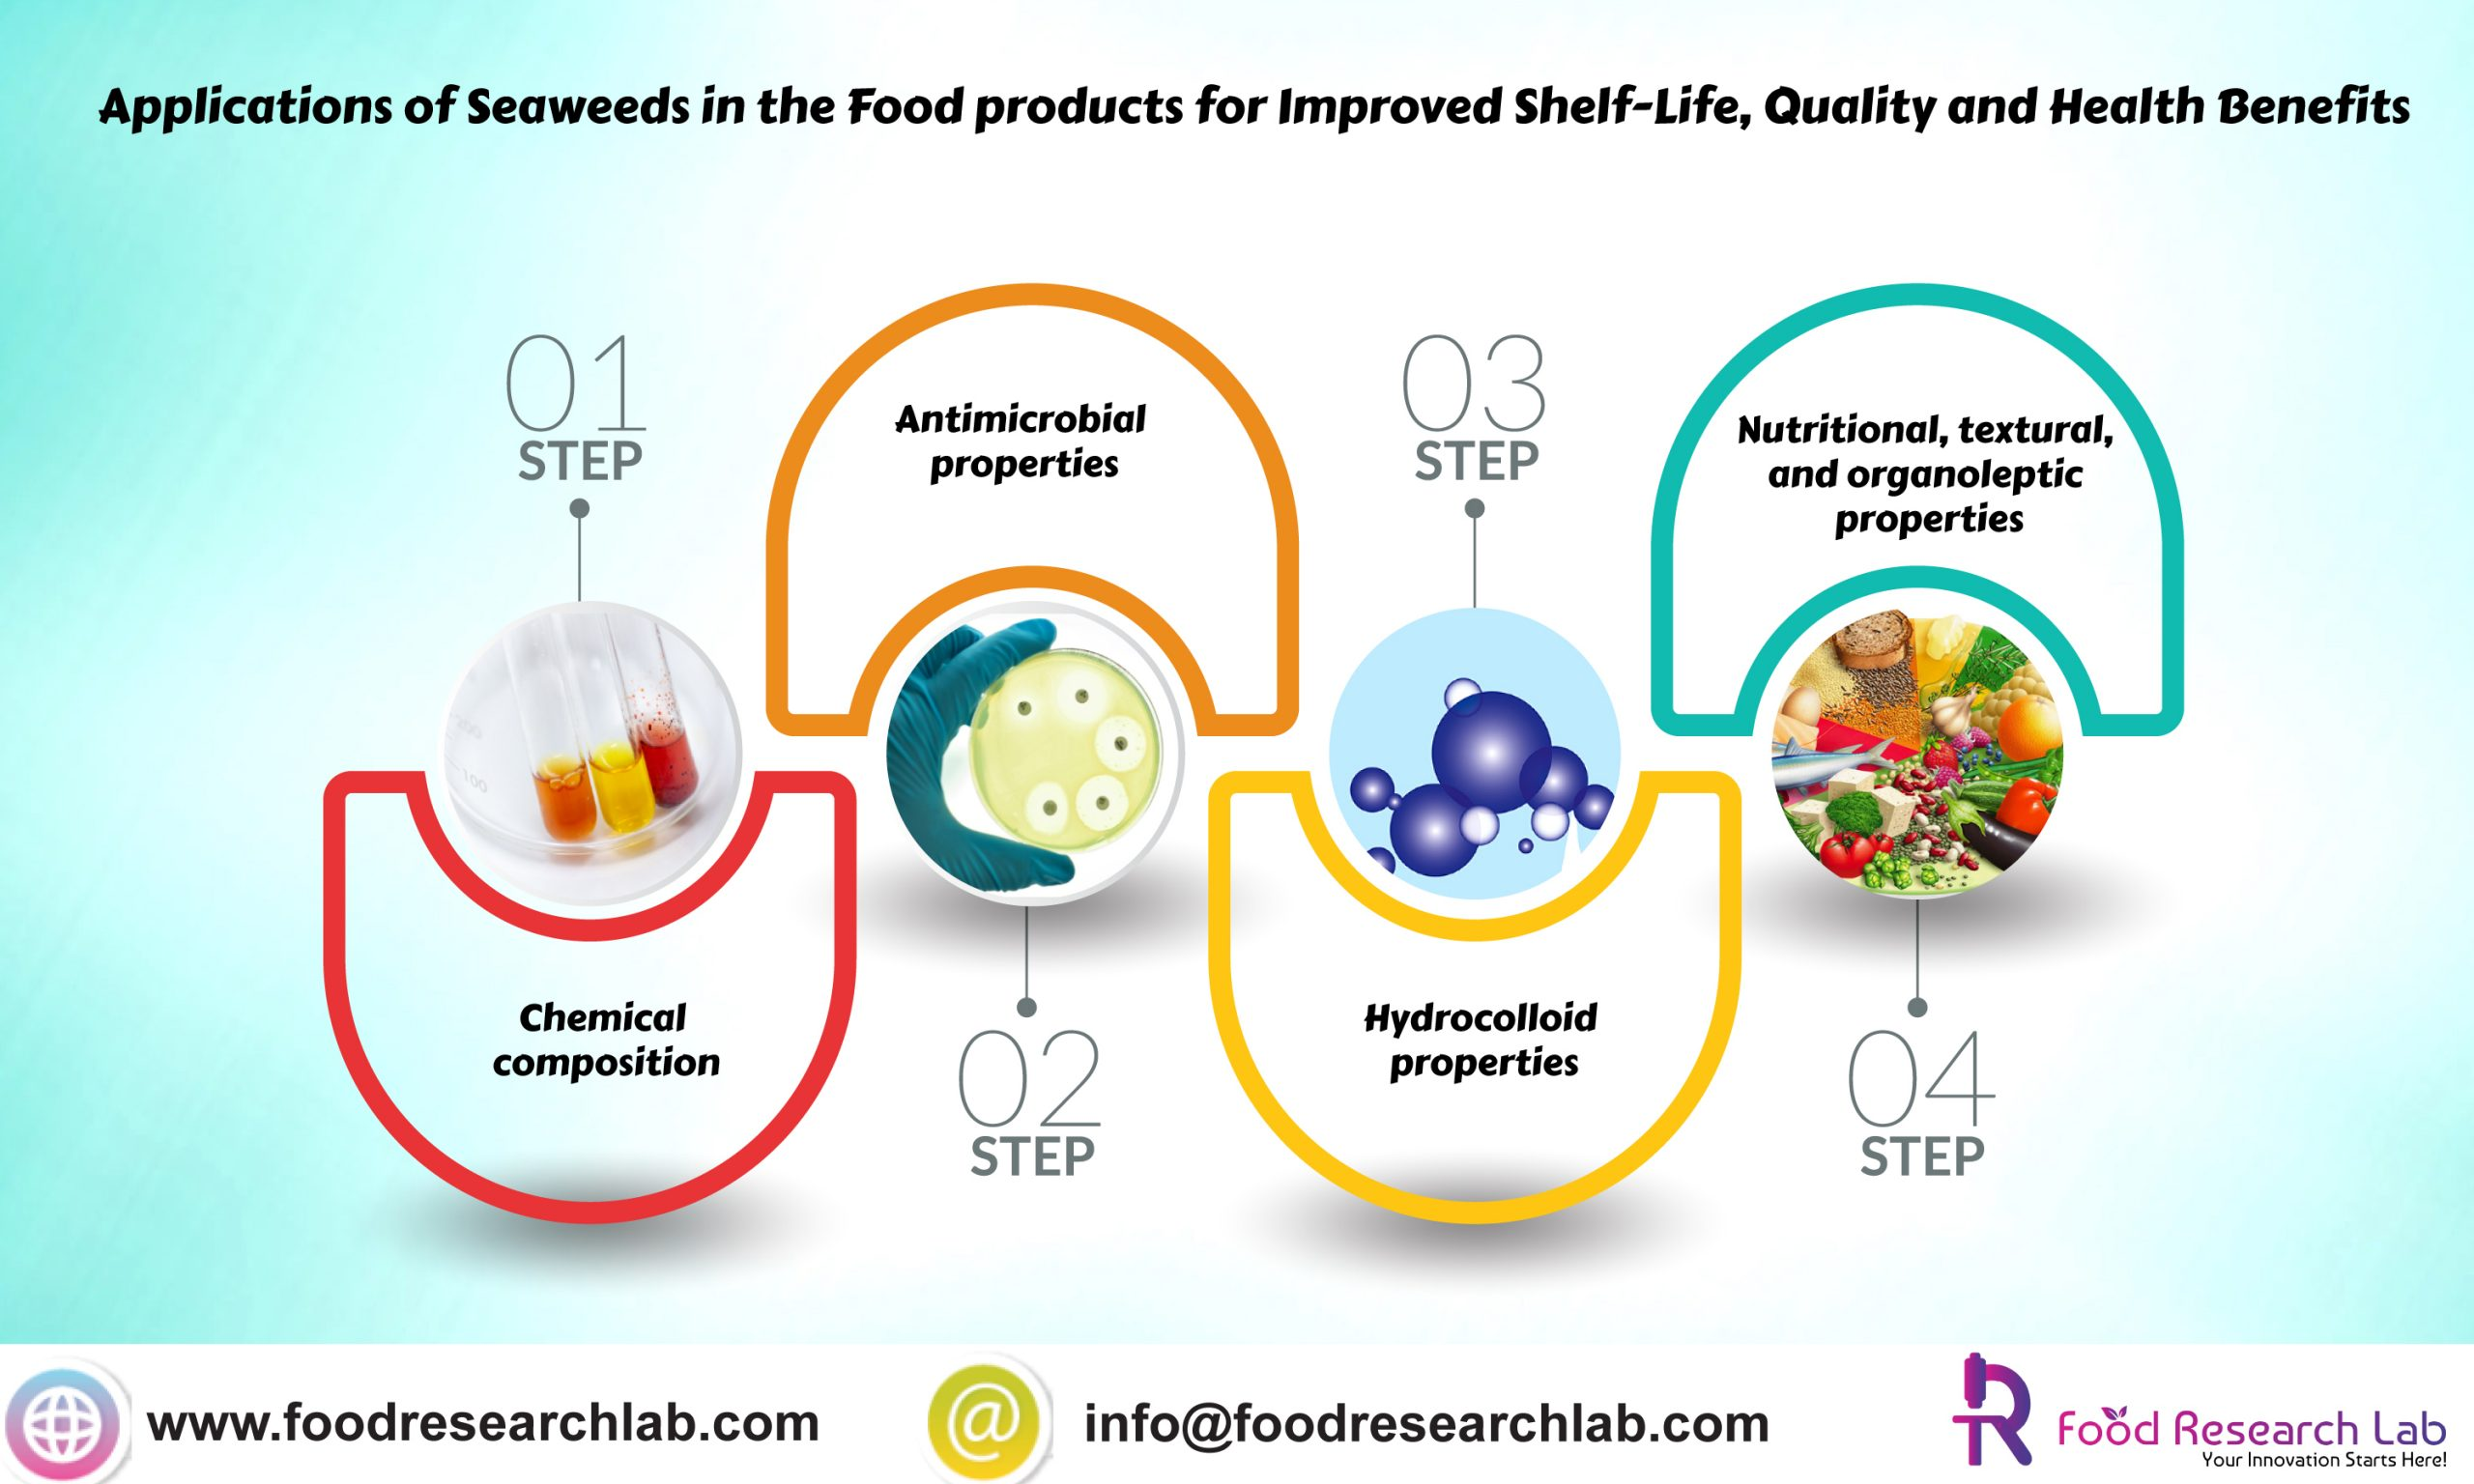 Incorporating Seaweeds as a healthy alternative to formulate low-salt meat products |Foodresearchlab